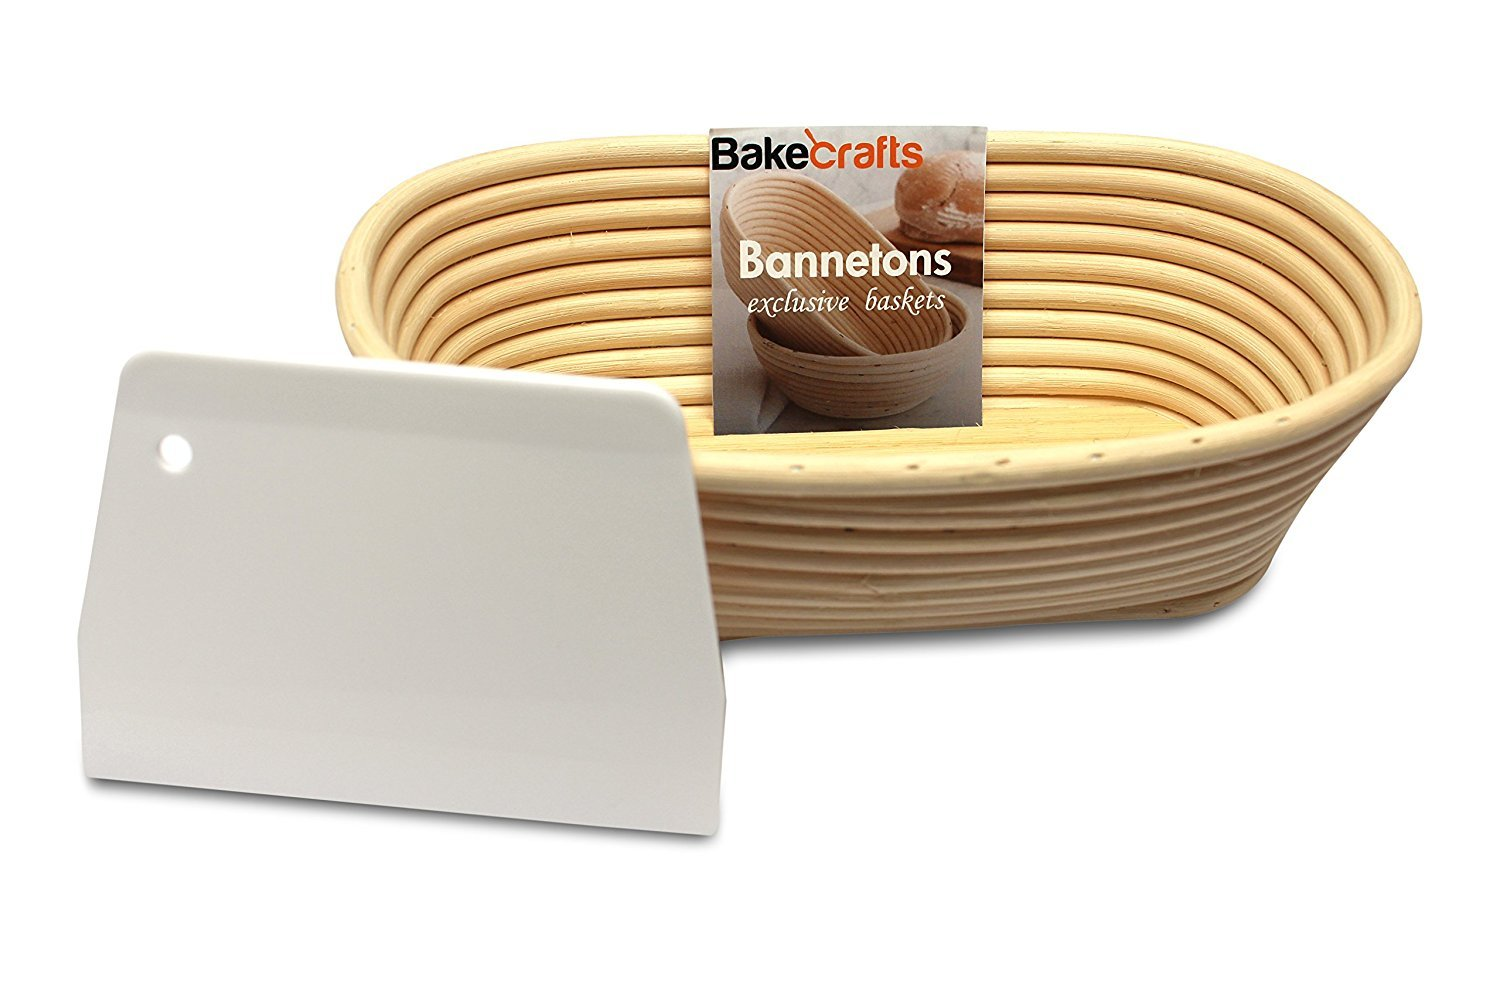 BakeCrafts - [10-inch] Oval Banneton Proofing Basket + FREE Dough Scraper | Oval Brotform Banneton Bread Proofing Rattan Basket Perfect For Homemade Artisan Bread COMINHKPR134730